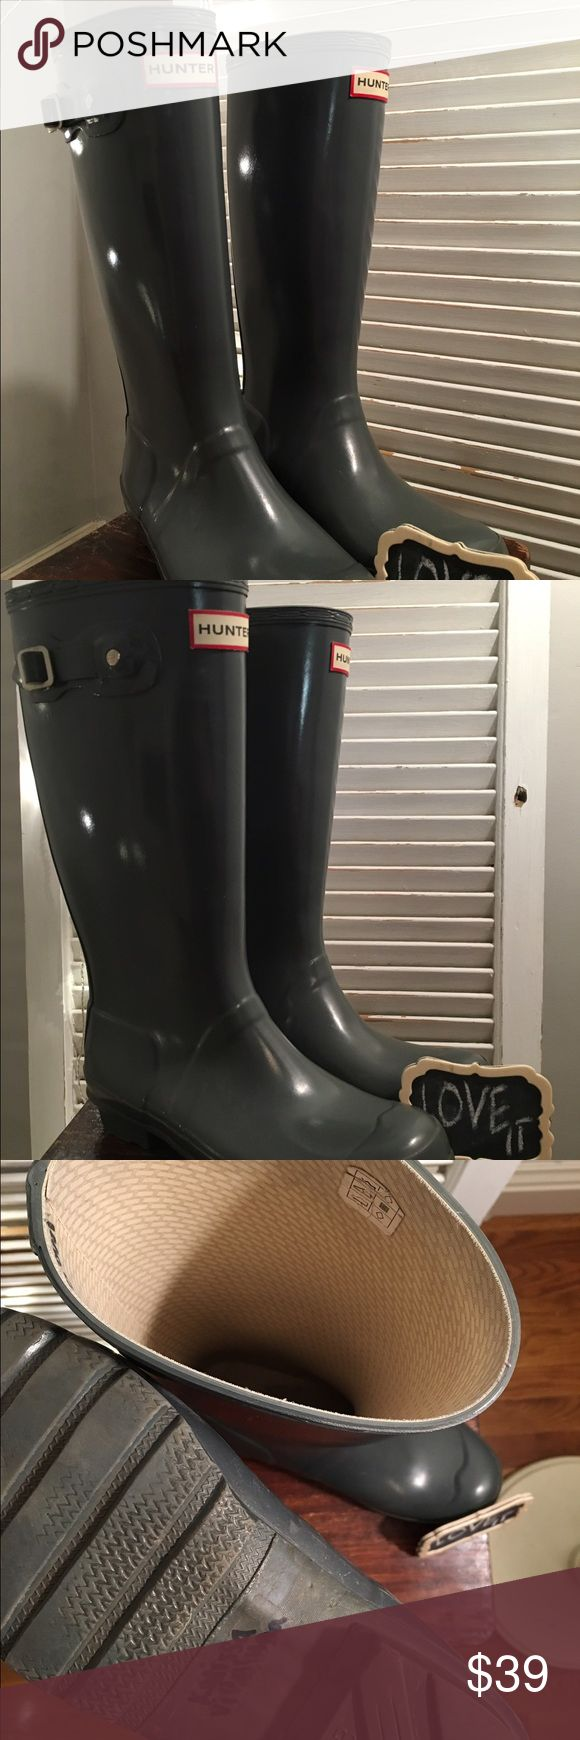 Kids Grey Hunter Boots These are the Authentic Kids Hunter boots in the Grey. :) Hunter Boots Shoes Rain & Snow Boots